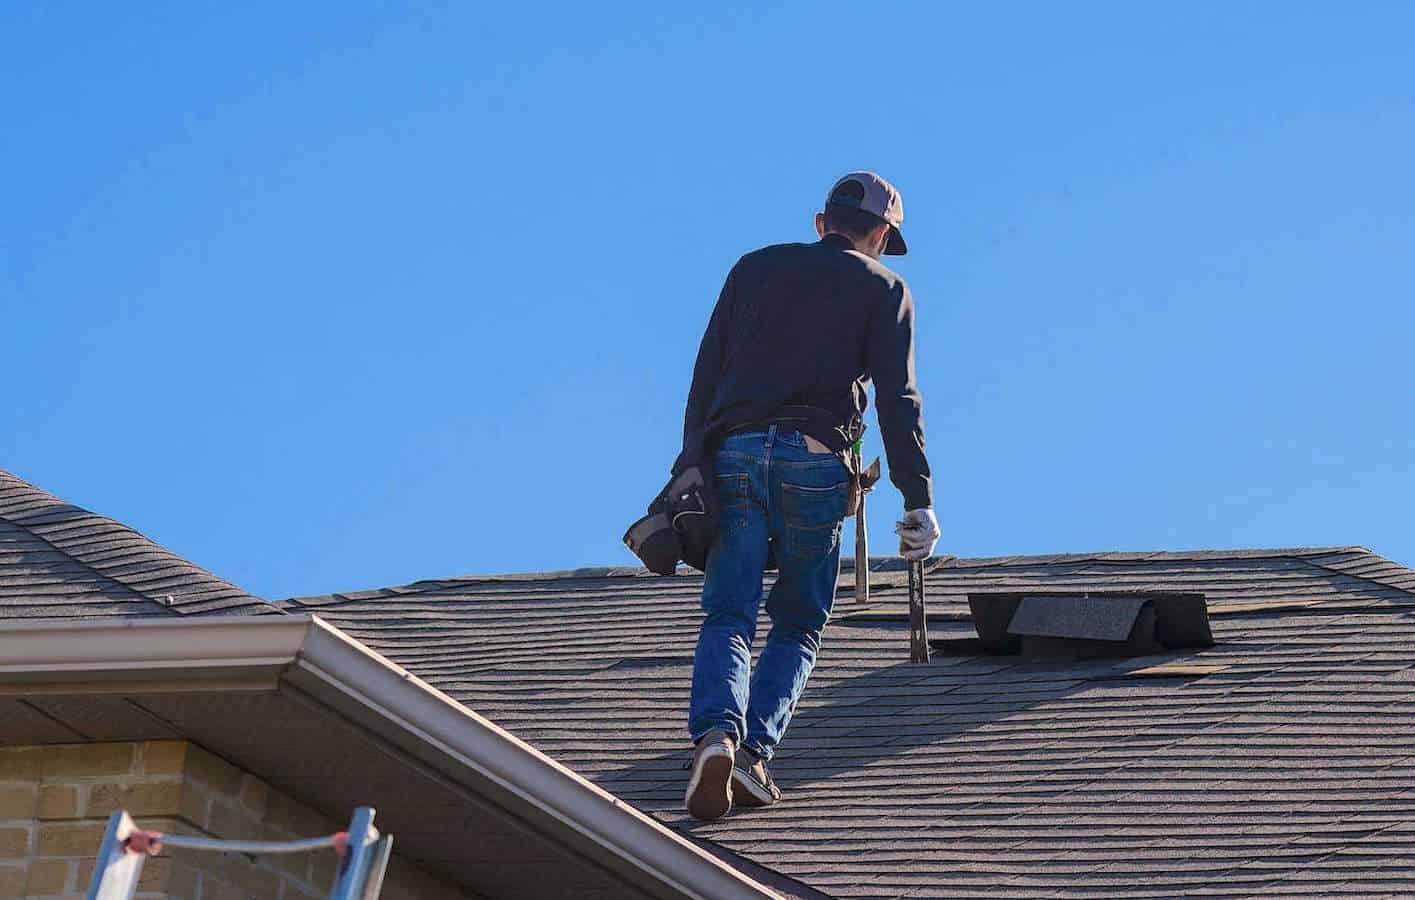 Inspecting Roof Damage for Insurance Claim